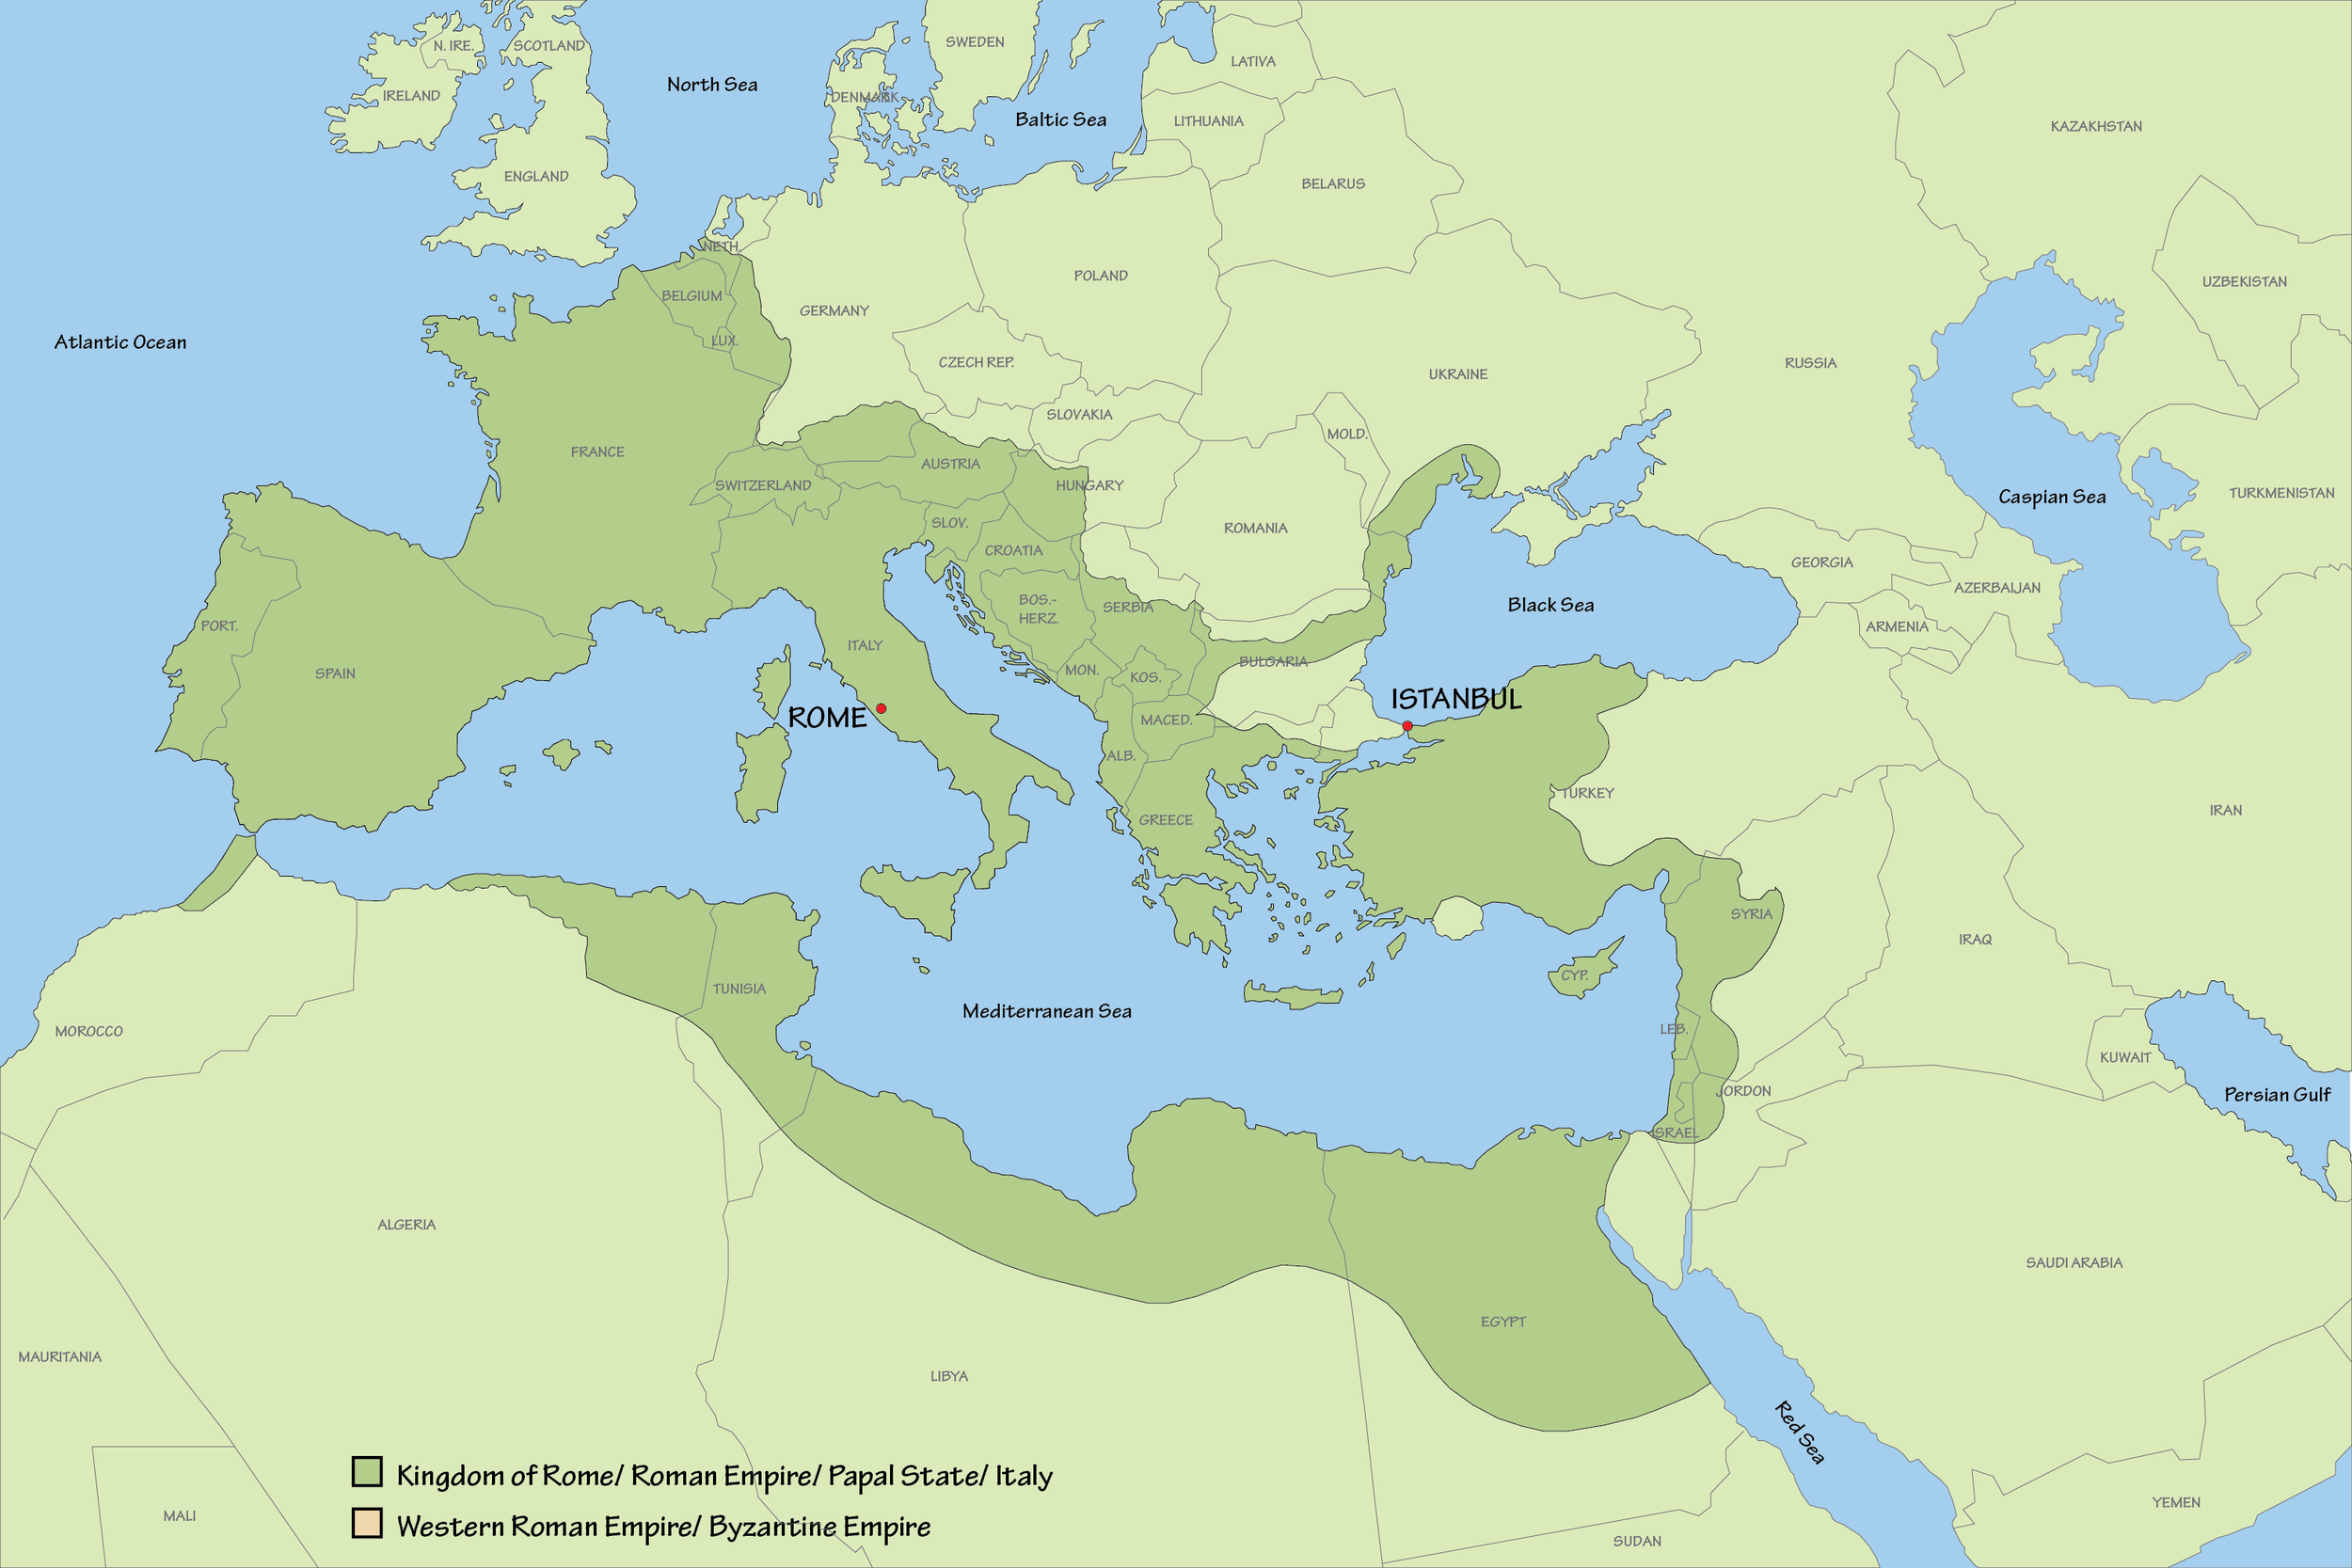 Exapnsion of Roman Empire Diagram_07-01.png